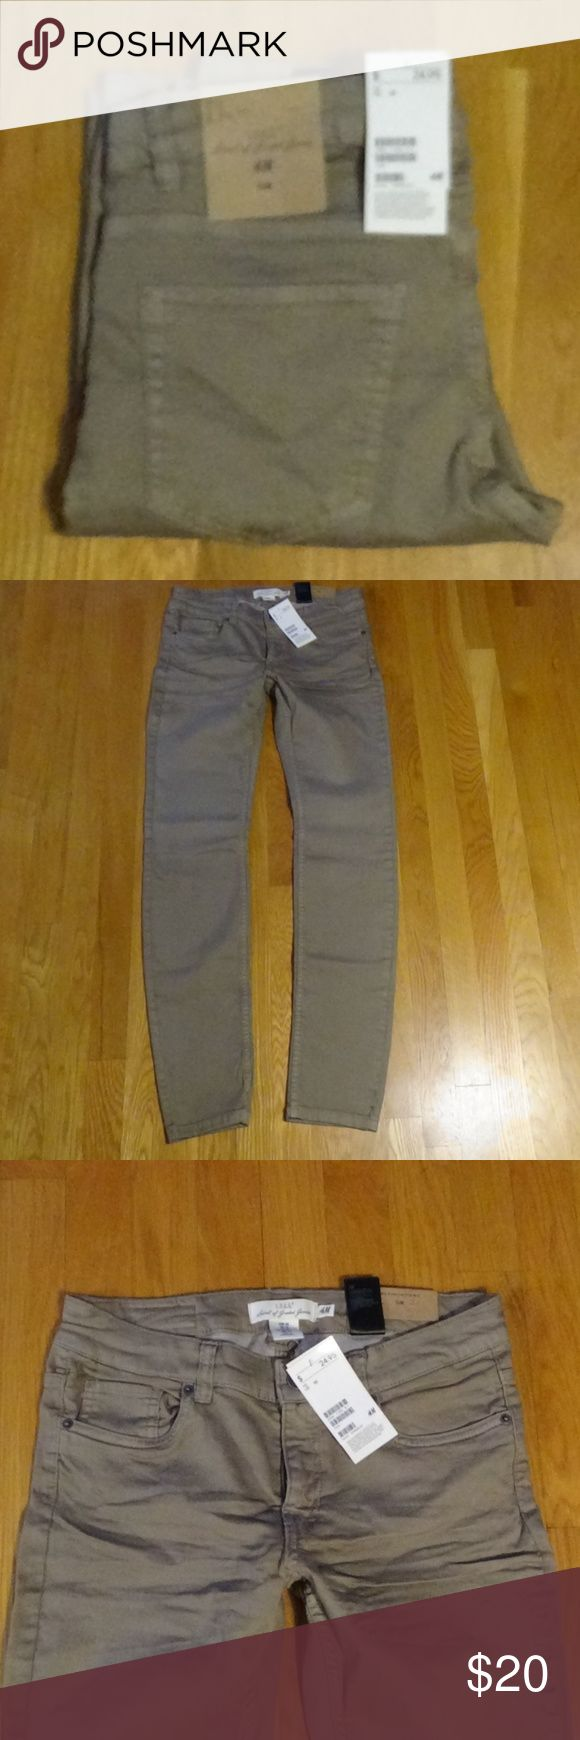 "NWT H&M Slim Skinny Jean - 10 NWT H&M Slim Skinny Jean - 10 - Tan - Factory whiskering - 79% Cotton; 19% Polyester; 2% Elastine - Waist 30 1/2""; Rise 8""; Inseam 31""  Please don't ask about different pricing in the comments - I will not discuss this in this area. Please use the OFFER button to make any offer as this shows your commitment to stand behind your negotiation. I may accept the offer, I may counteroffer, or decline. H&M Jeans Skinny"